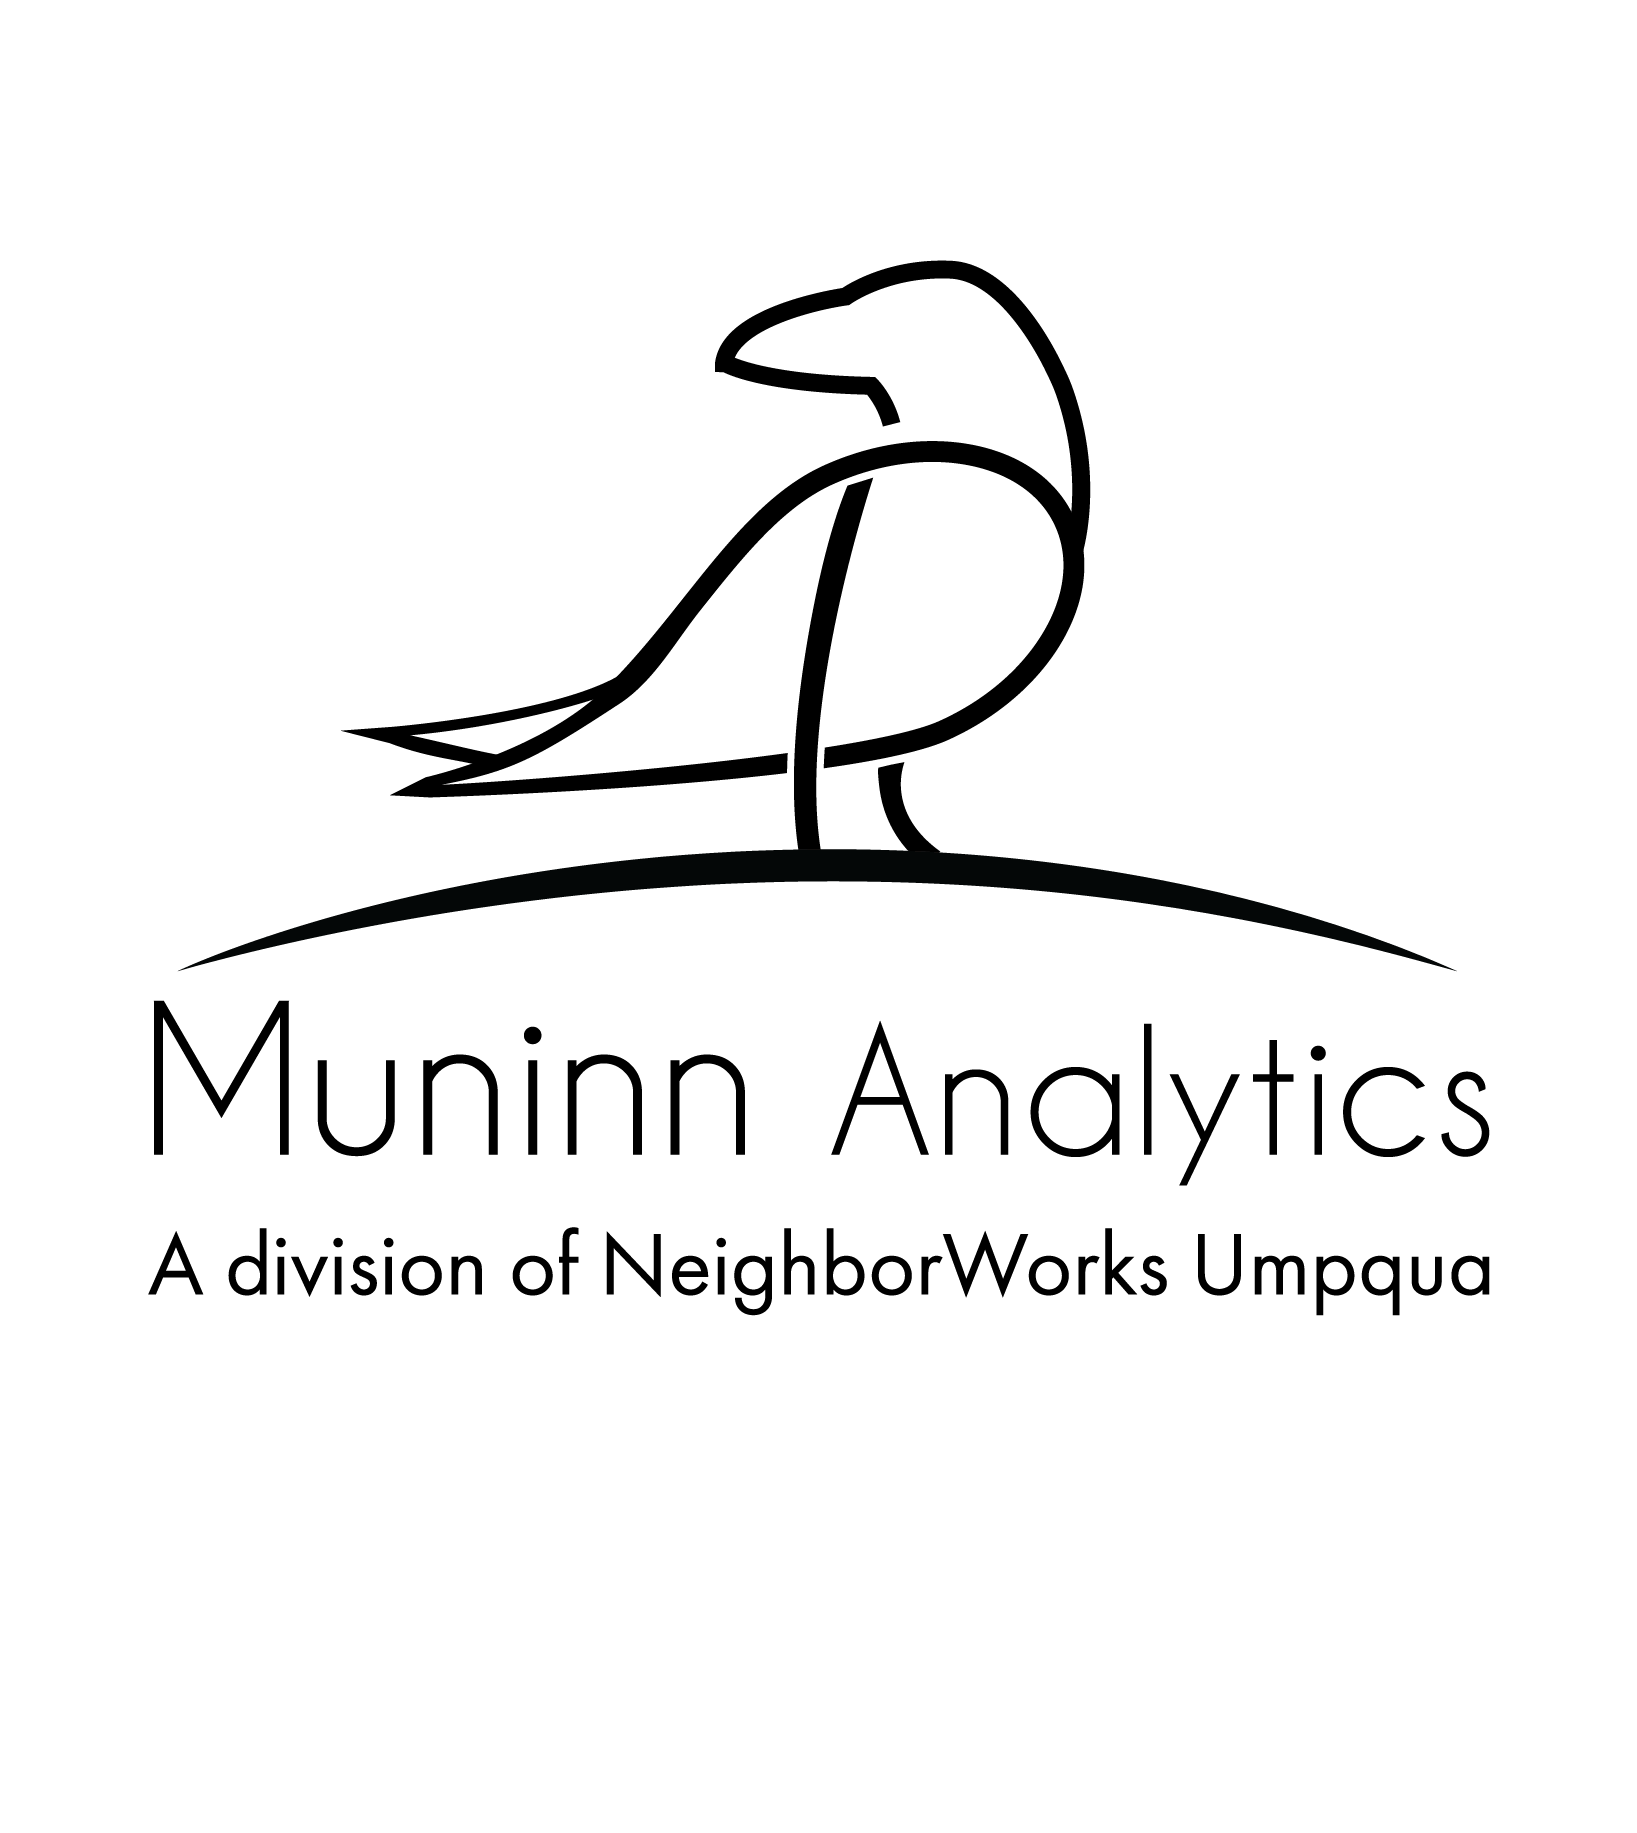 Muninn Analytics